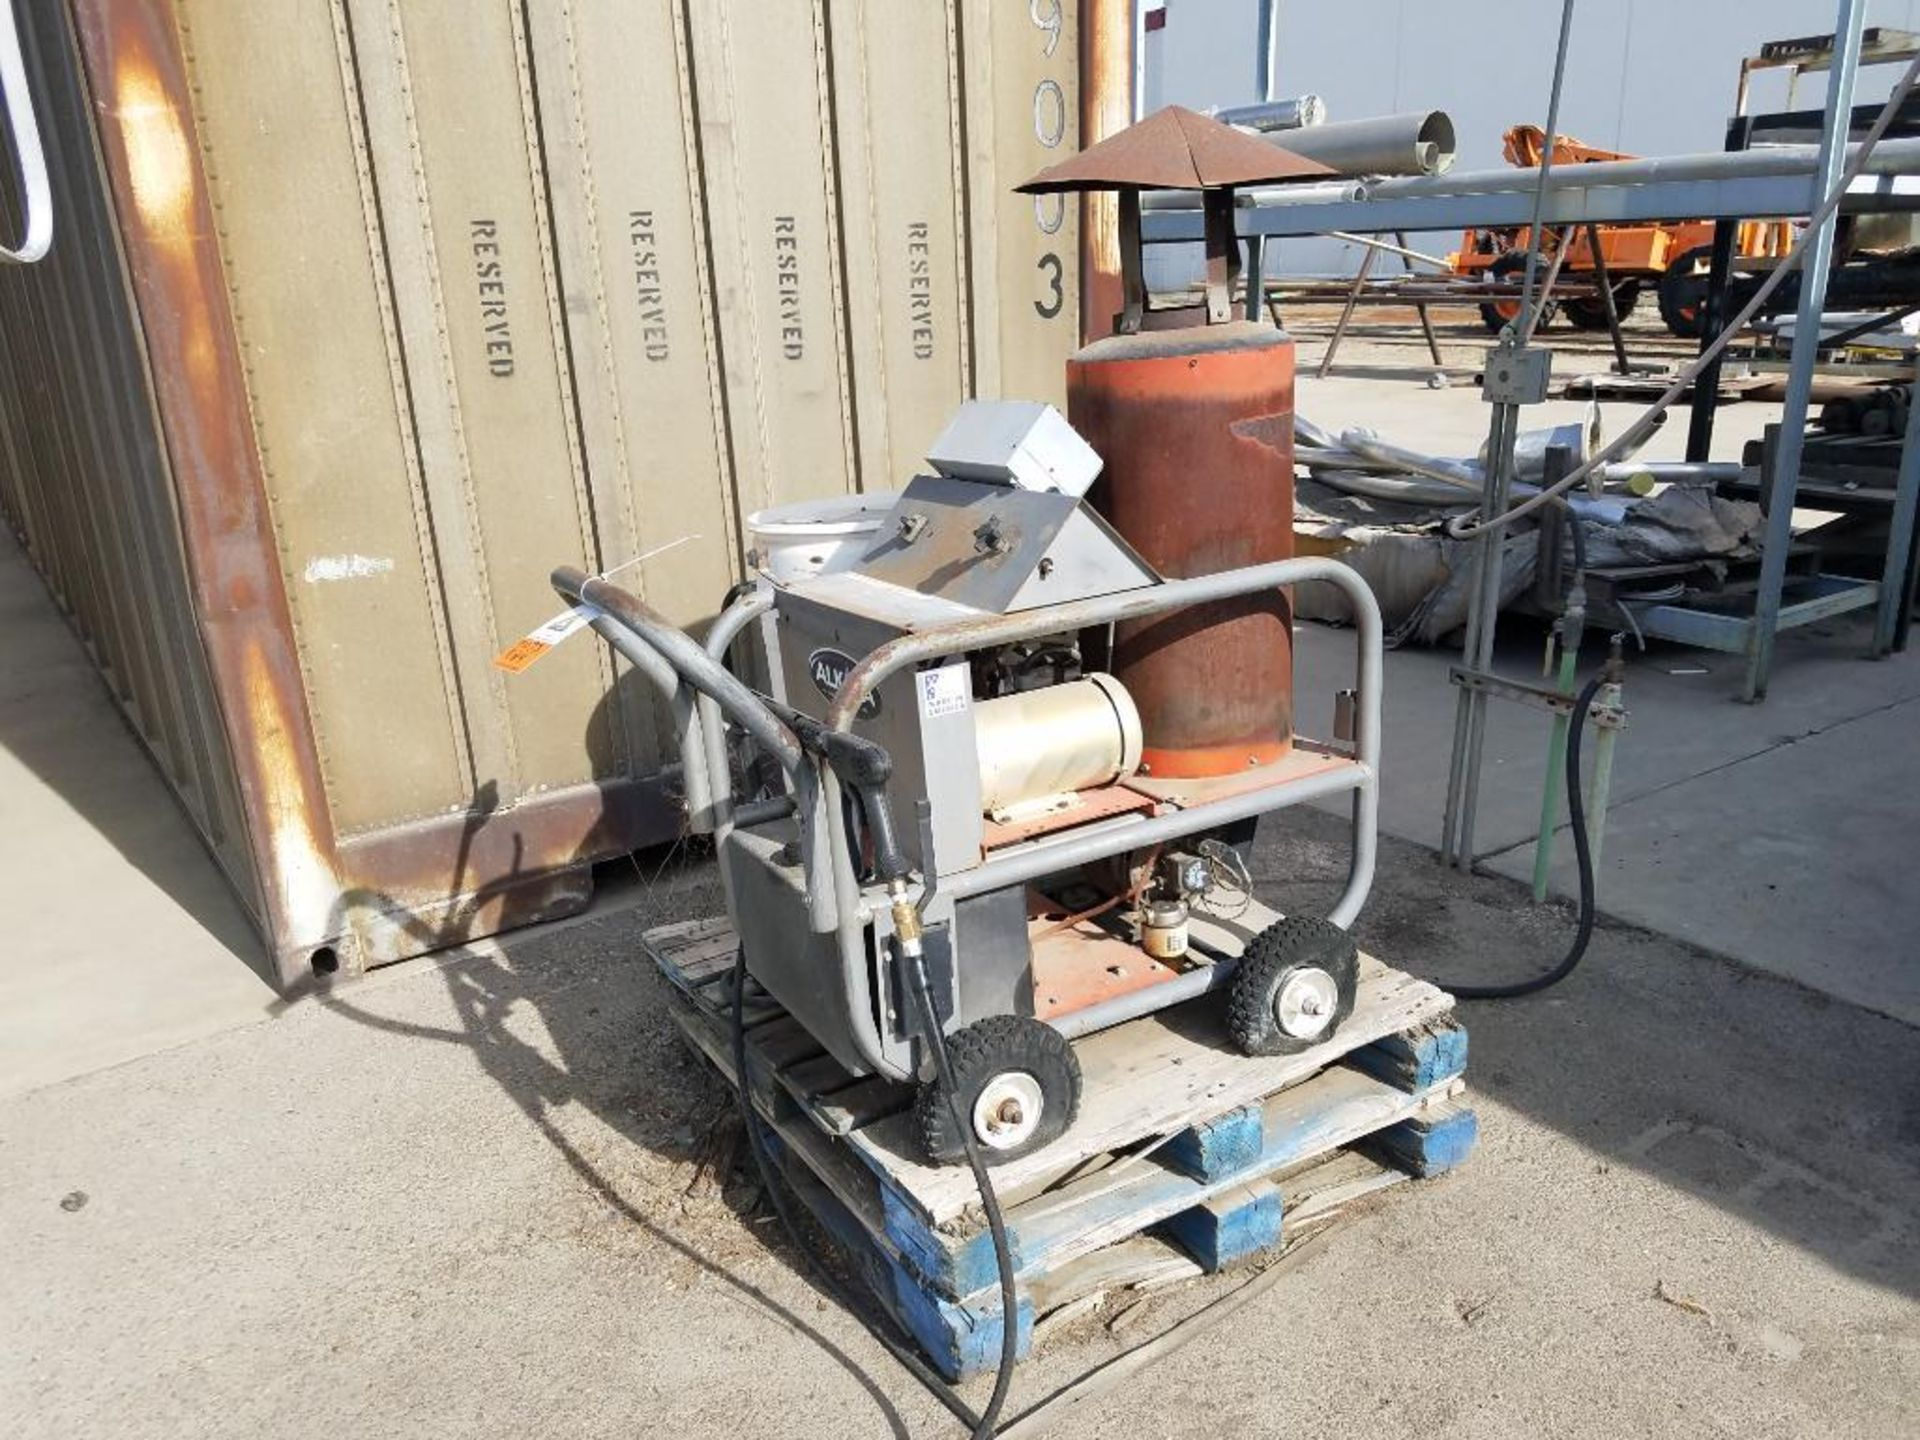 blower diverter with frame, aluminum mezzanine, steam washer, and Fallas cartoner - Image 9 of 13